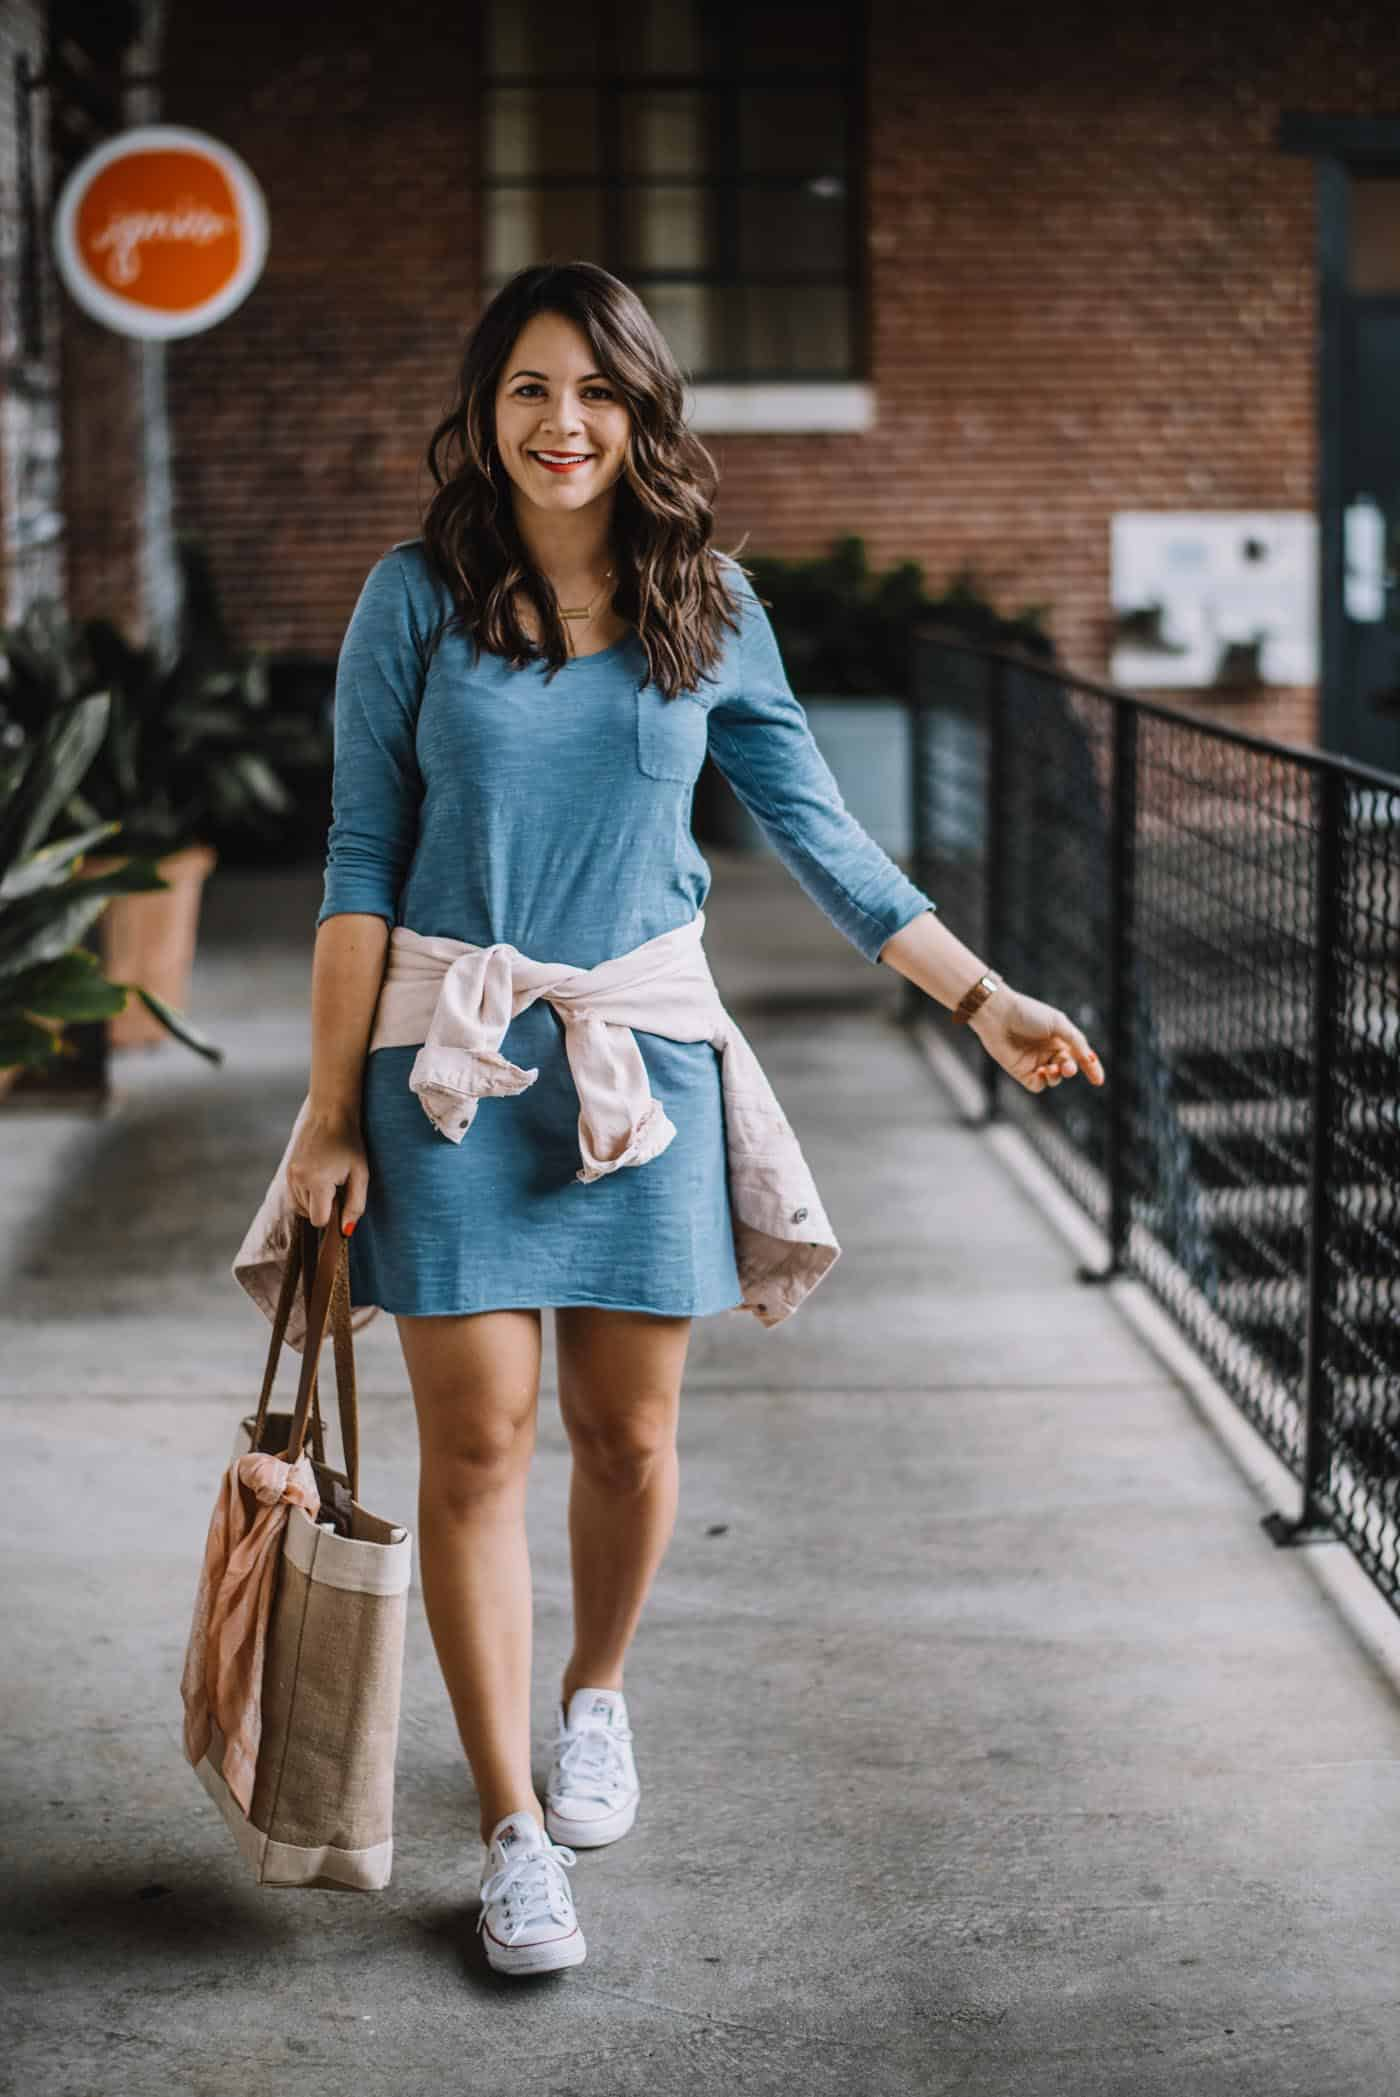 tshirt dress, converse, how to wear a tshirt dress - My Style Vita